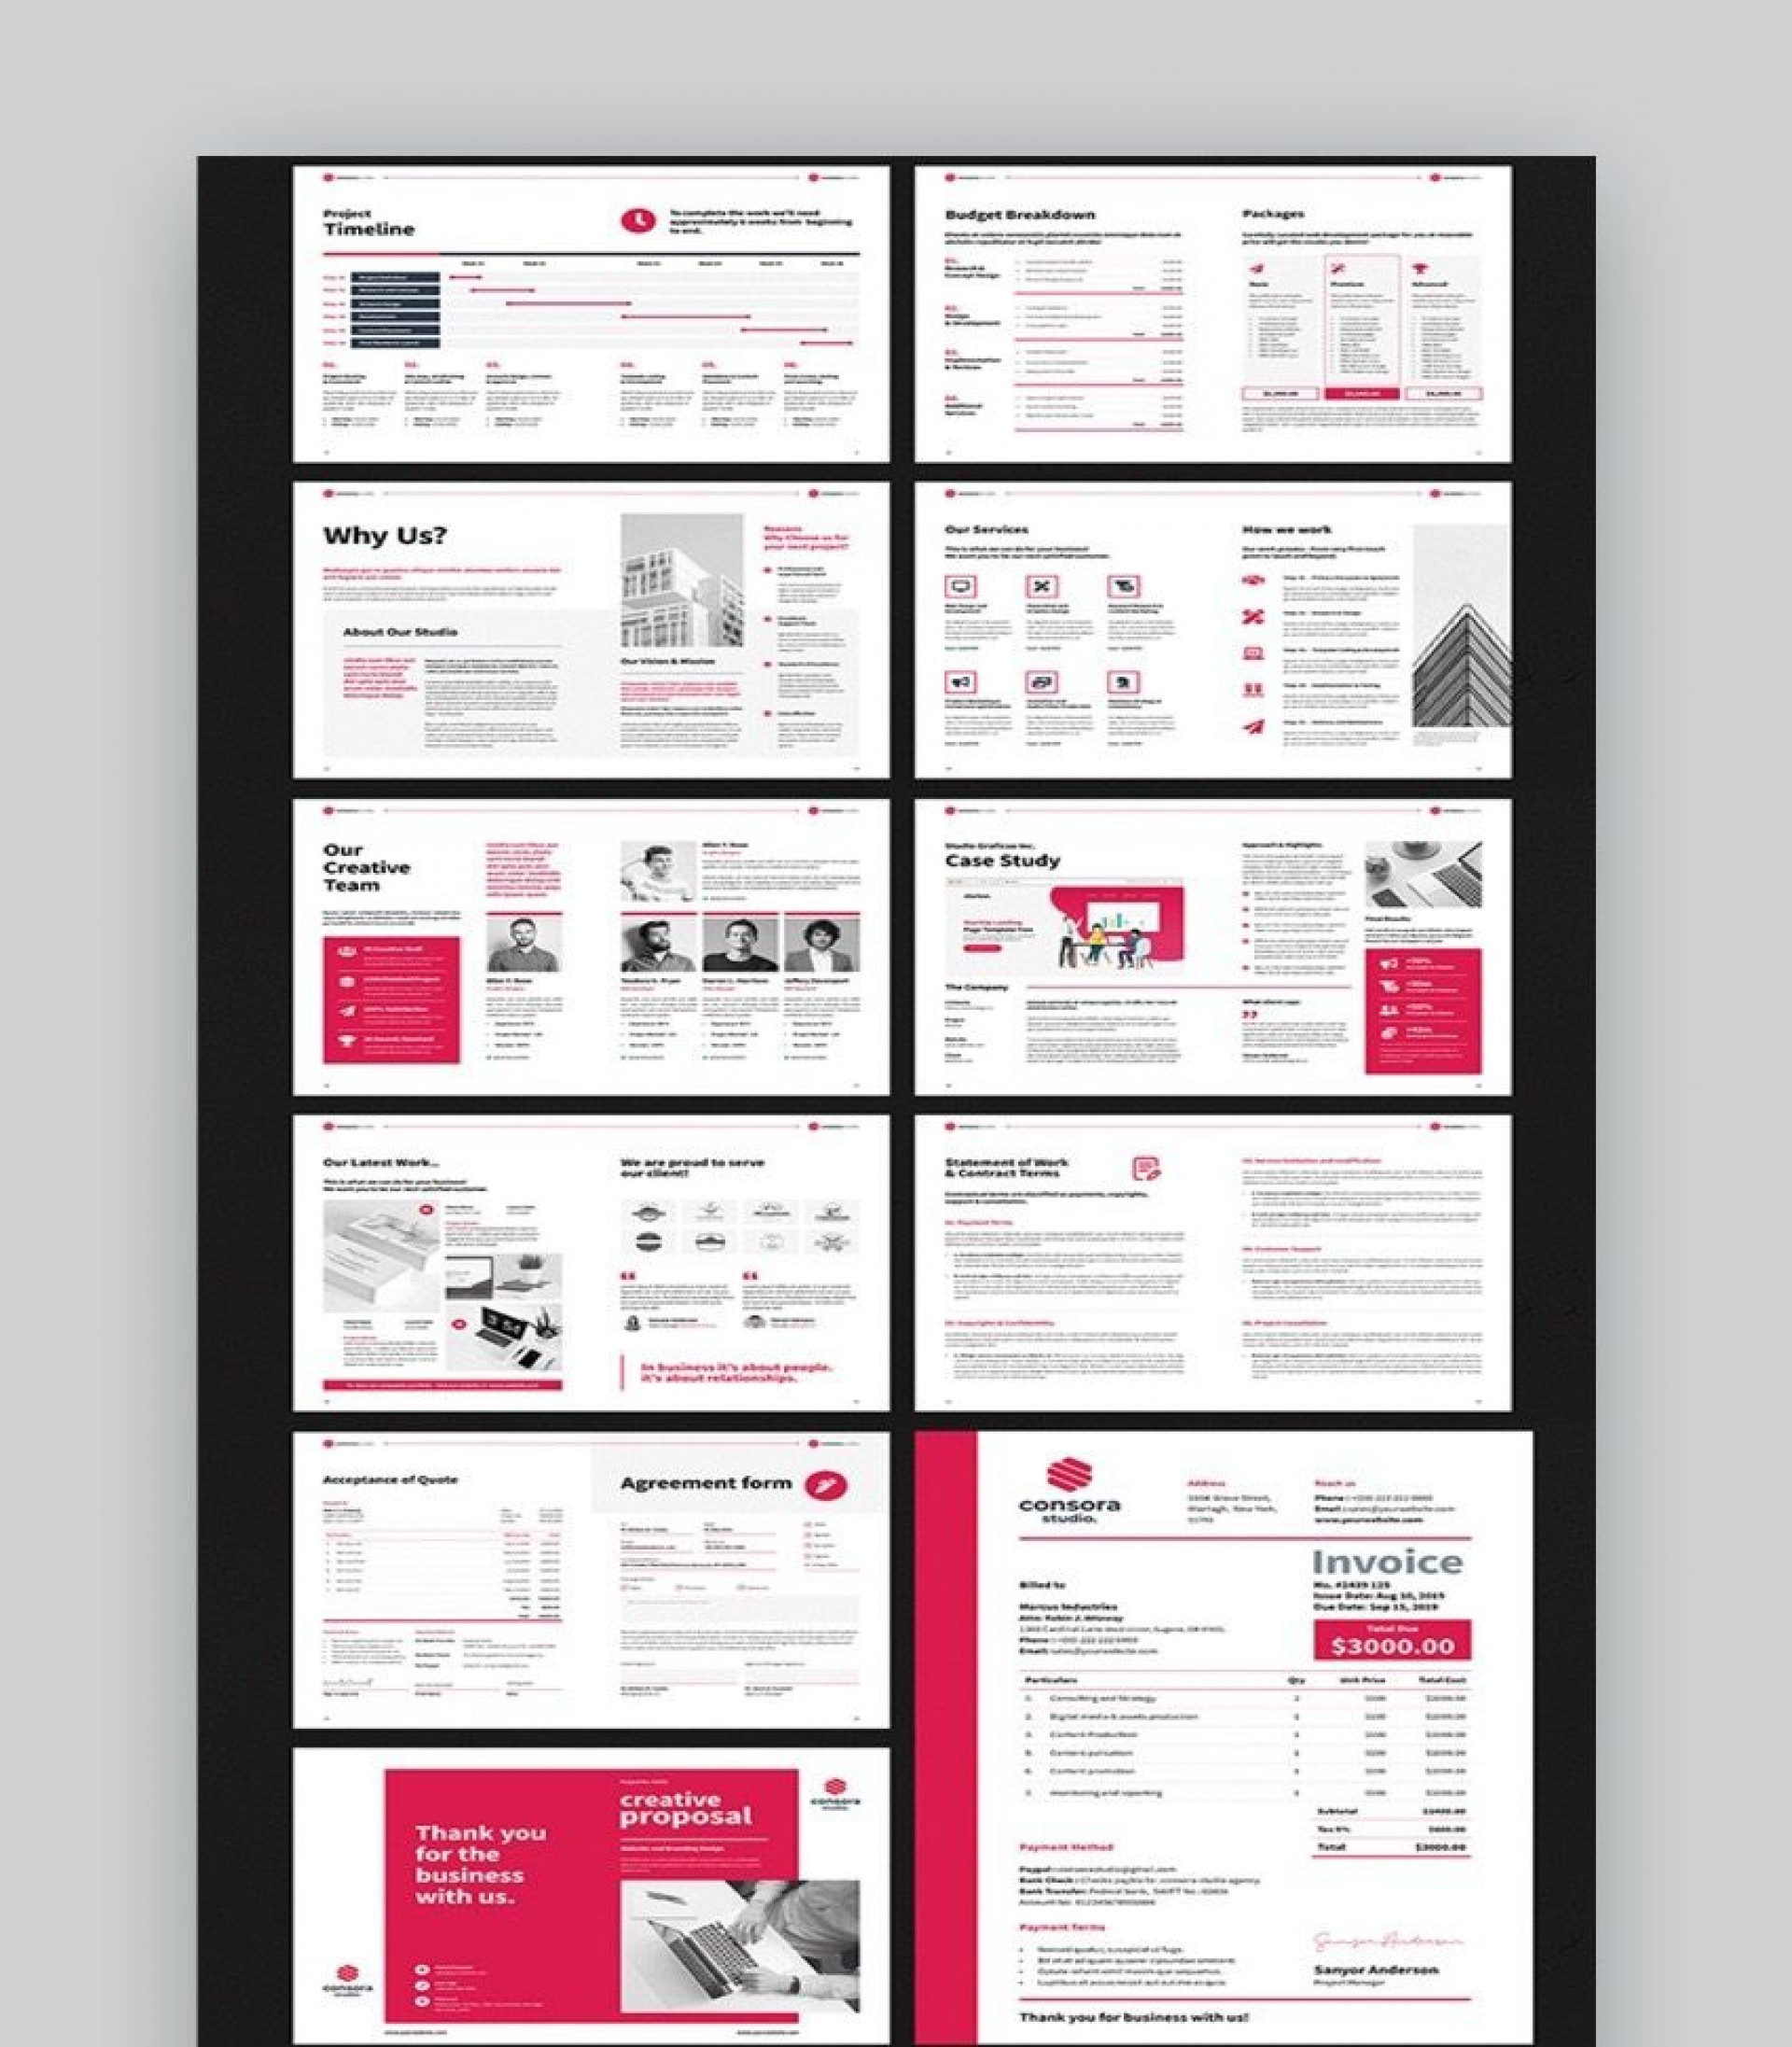 006 Marvelou Microsoft Word Free Template Inspiration  Templates For Report Invoice Uk Download1920